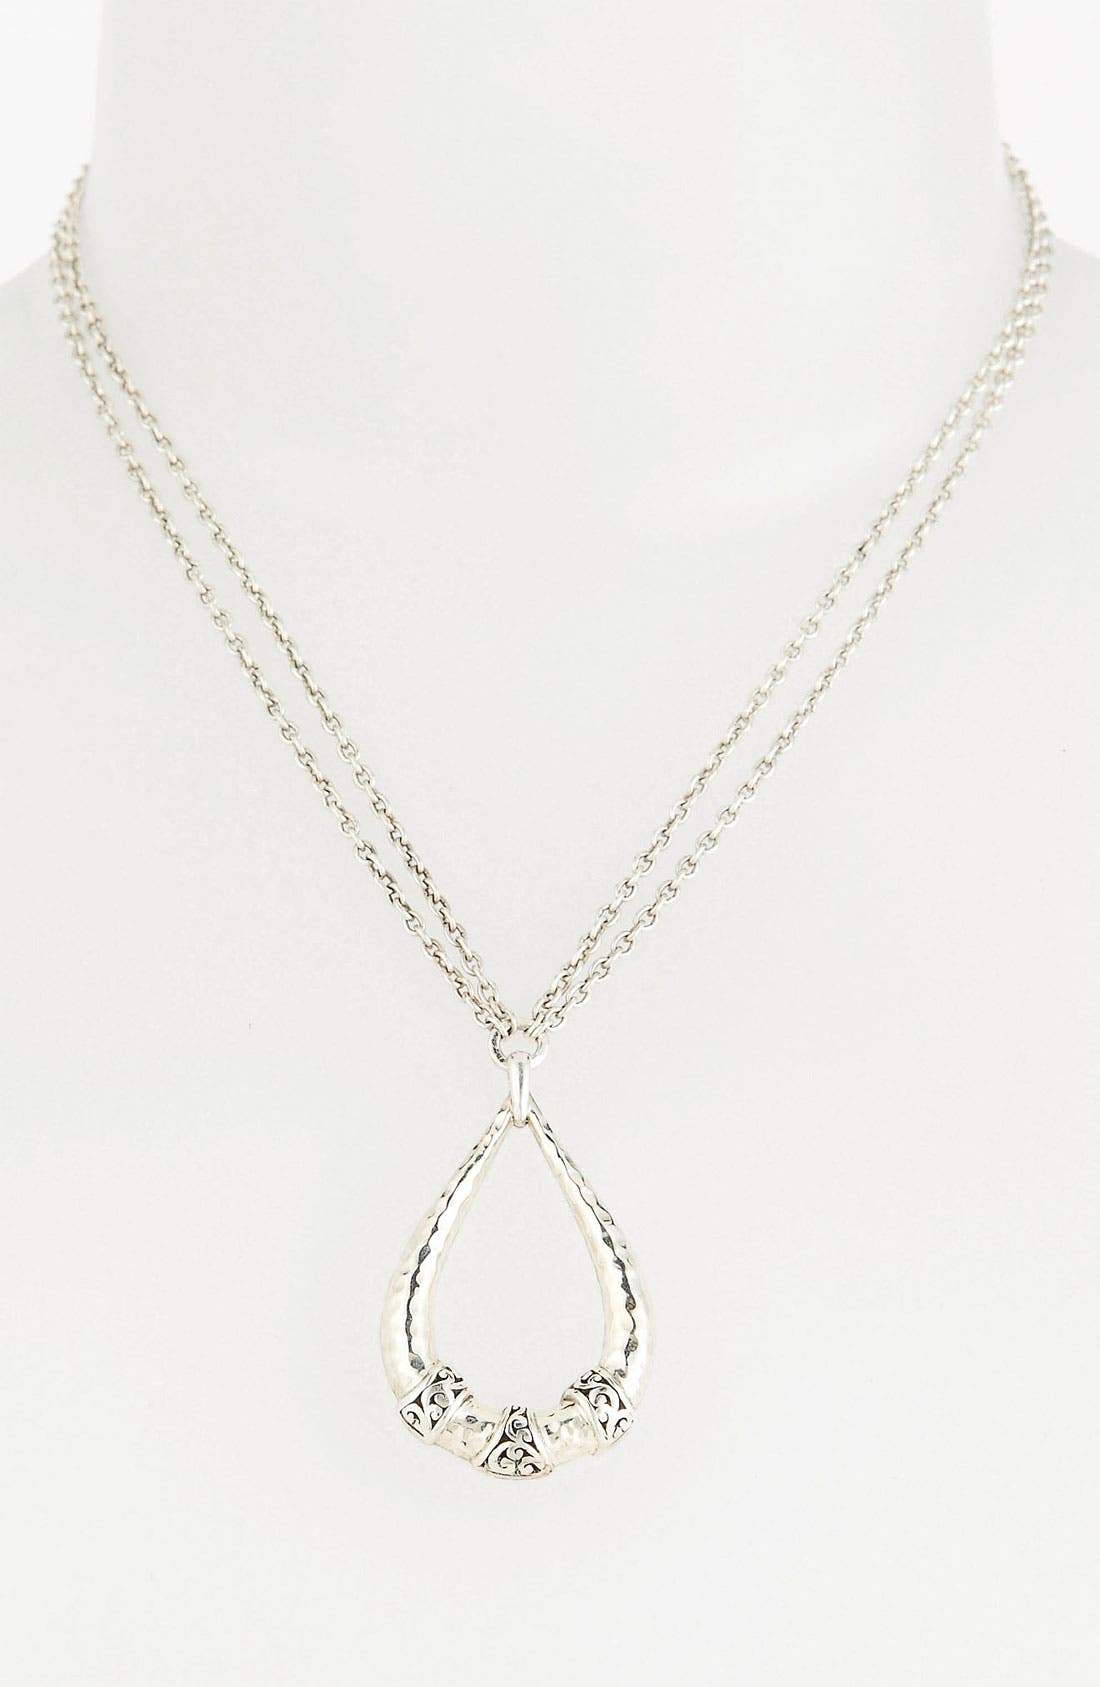 Main Image - Lois Hill 'Classy Cutout Waves' Teardrop Pendant Necklace